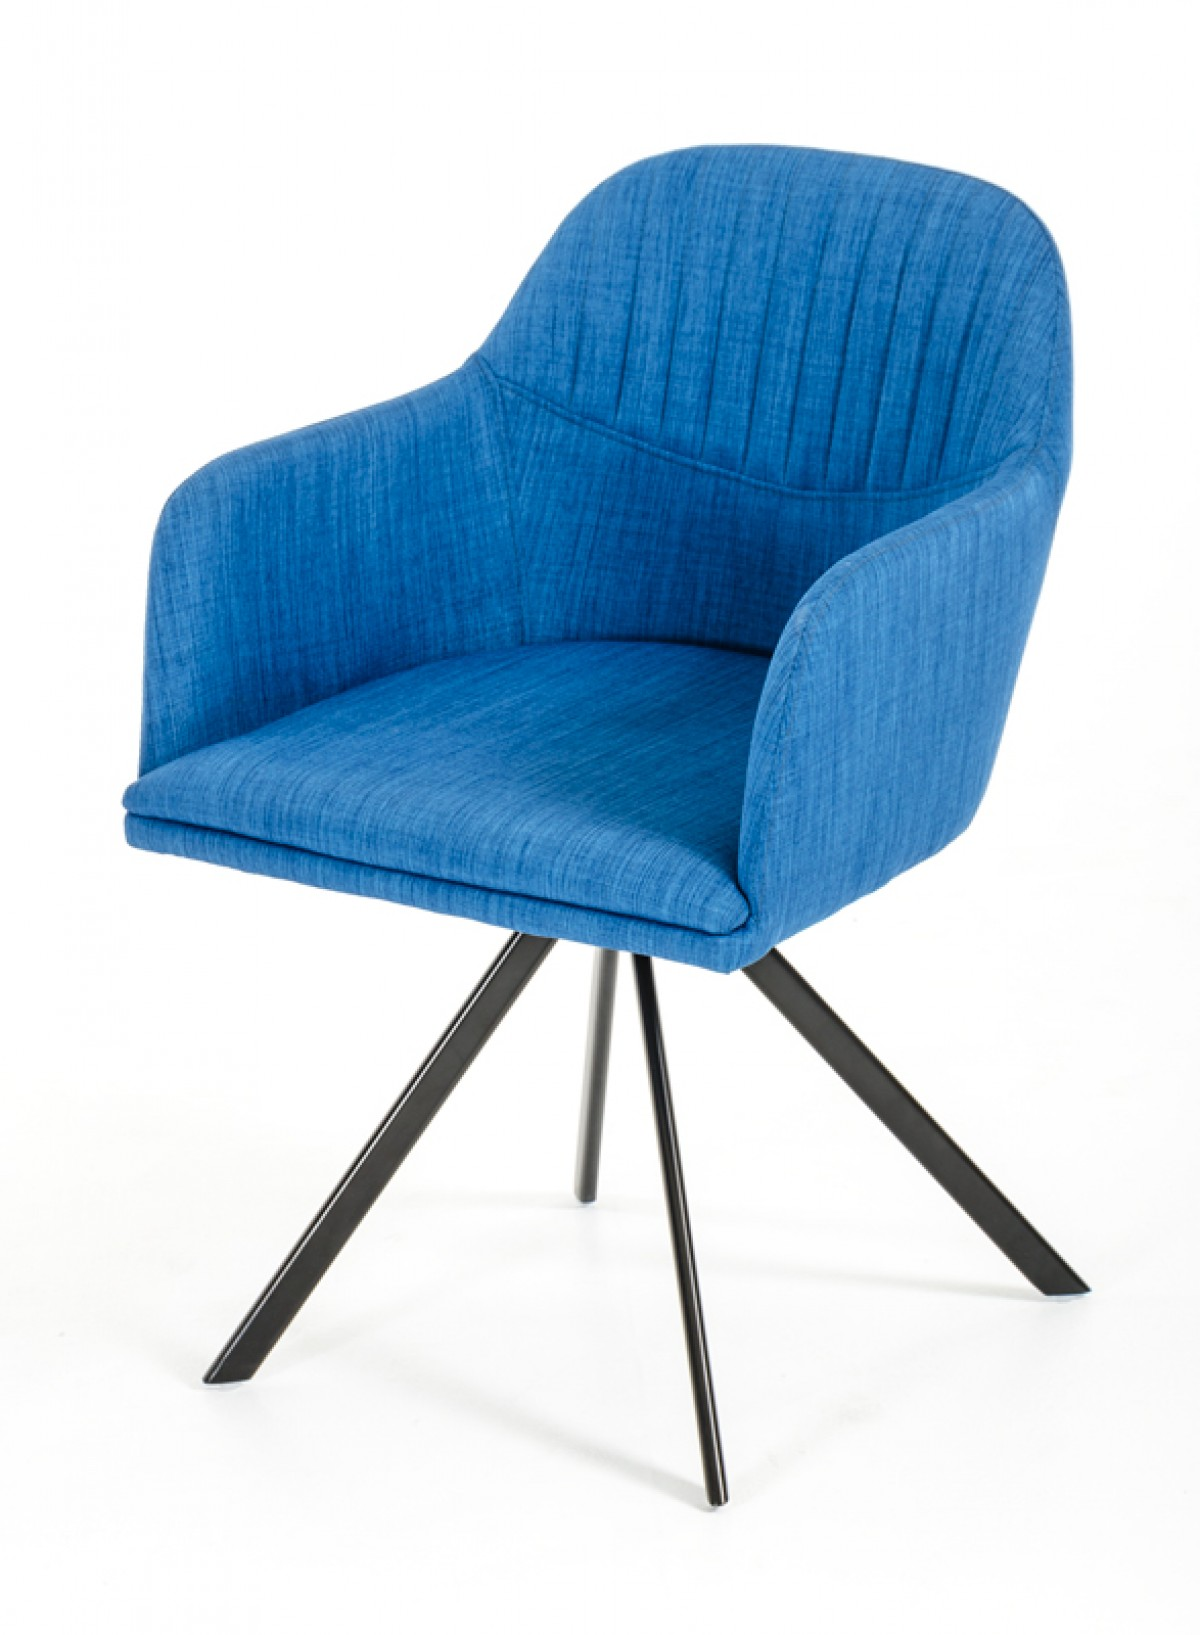 Modrest Synergy Modern Blue Fabric Dining Arm Chair : synergyblue02dsc9247 from www.vigfurniture.com size 1200 x 1635 jpeg 187kB